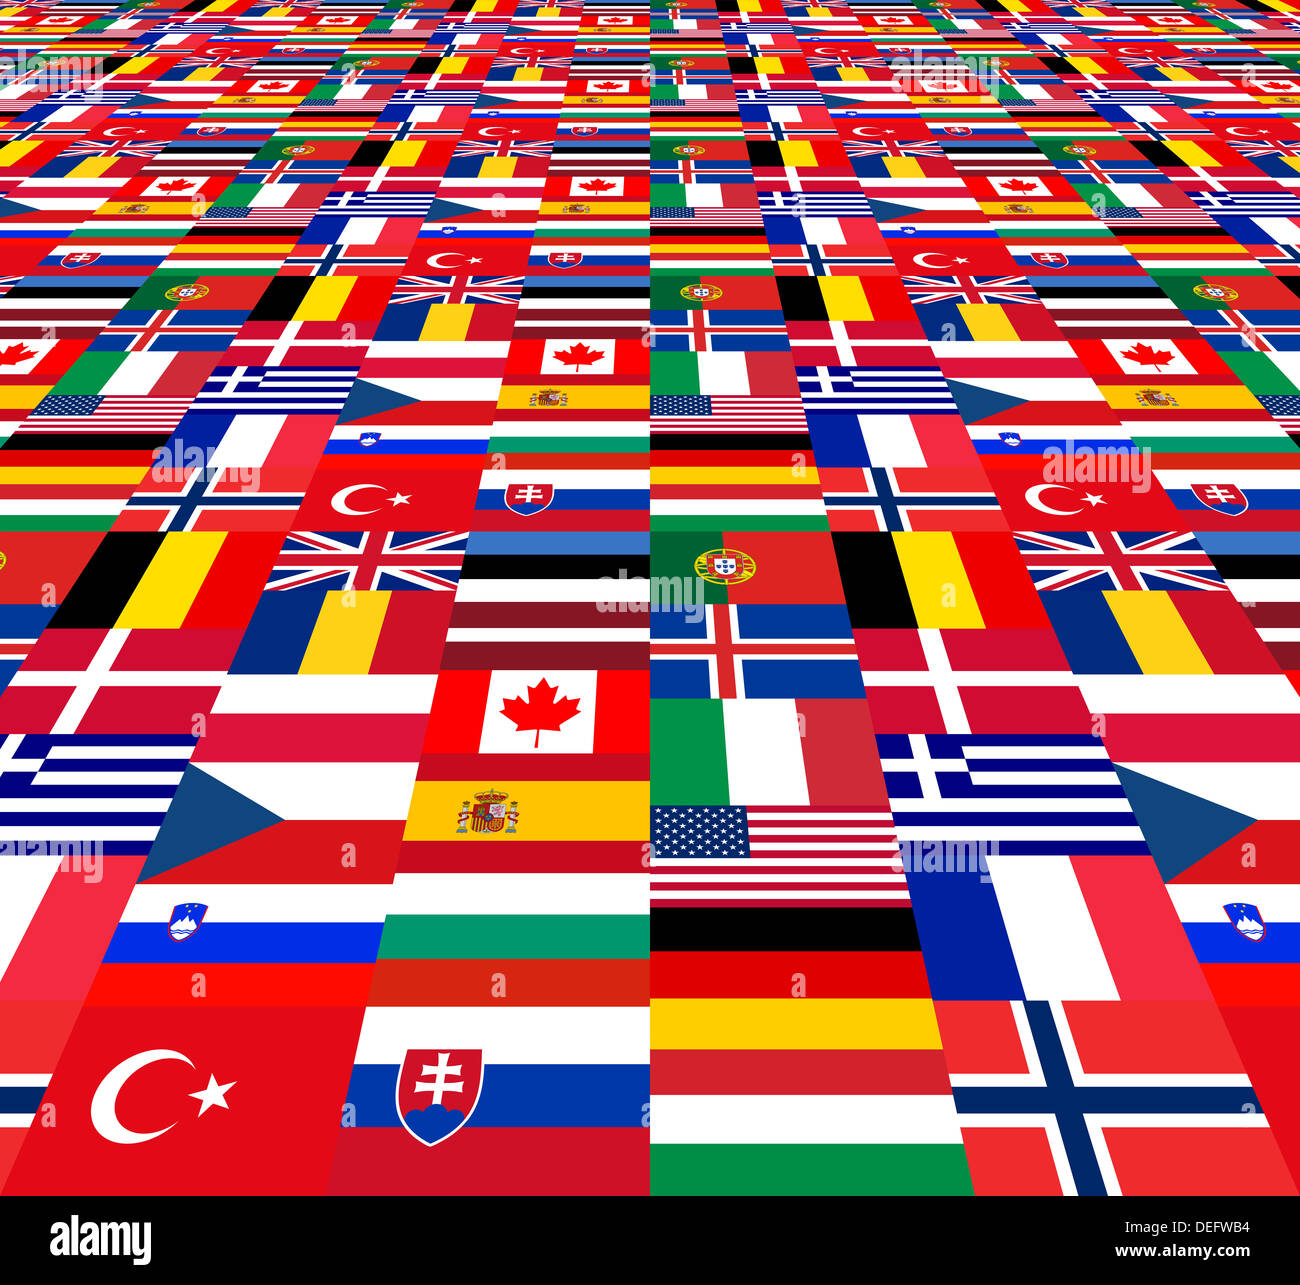 National flags of the NATO countries - Stock Image